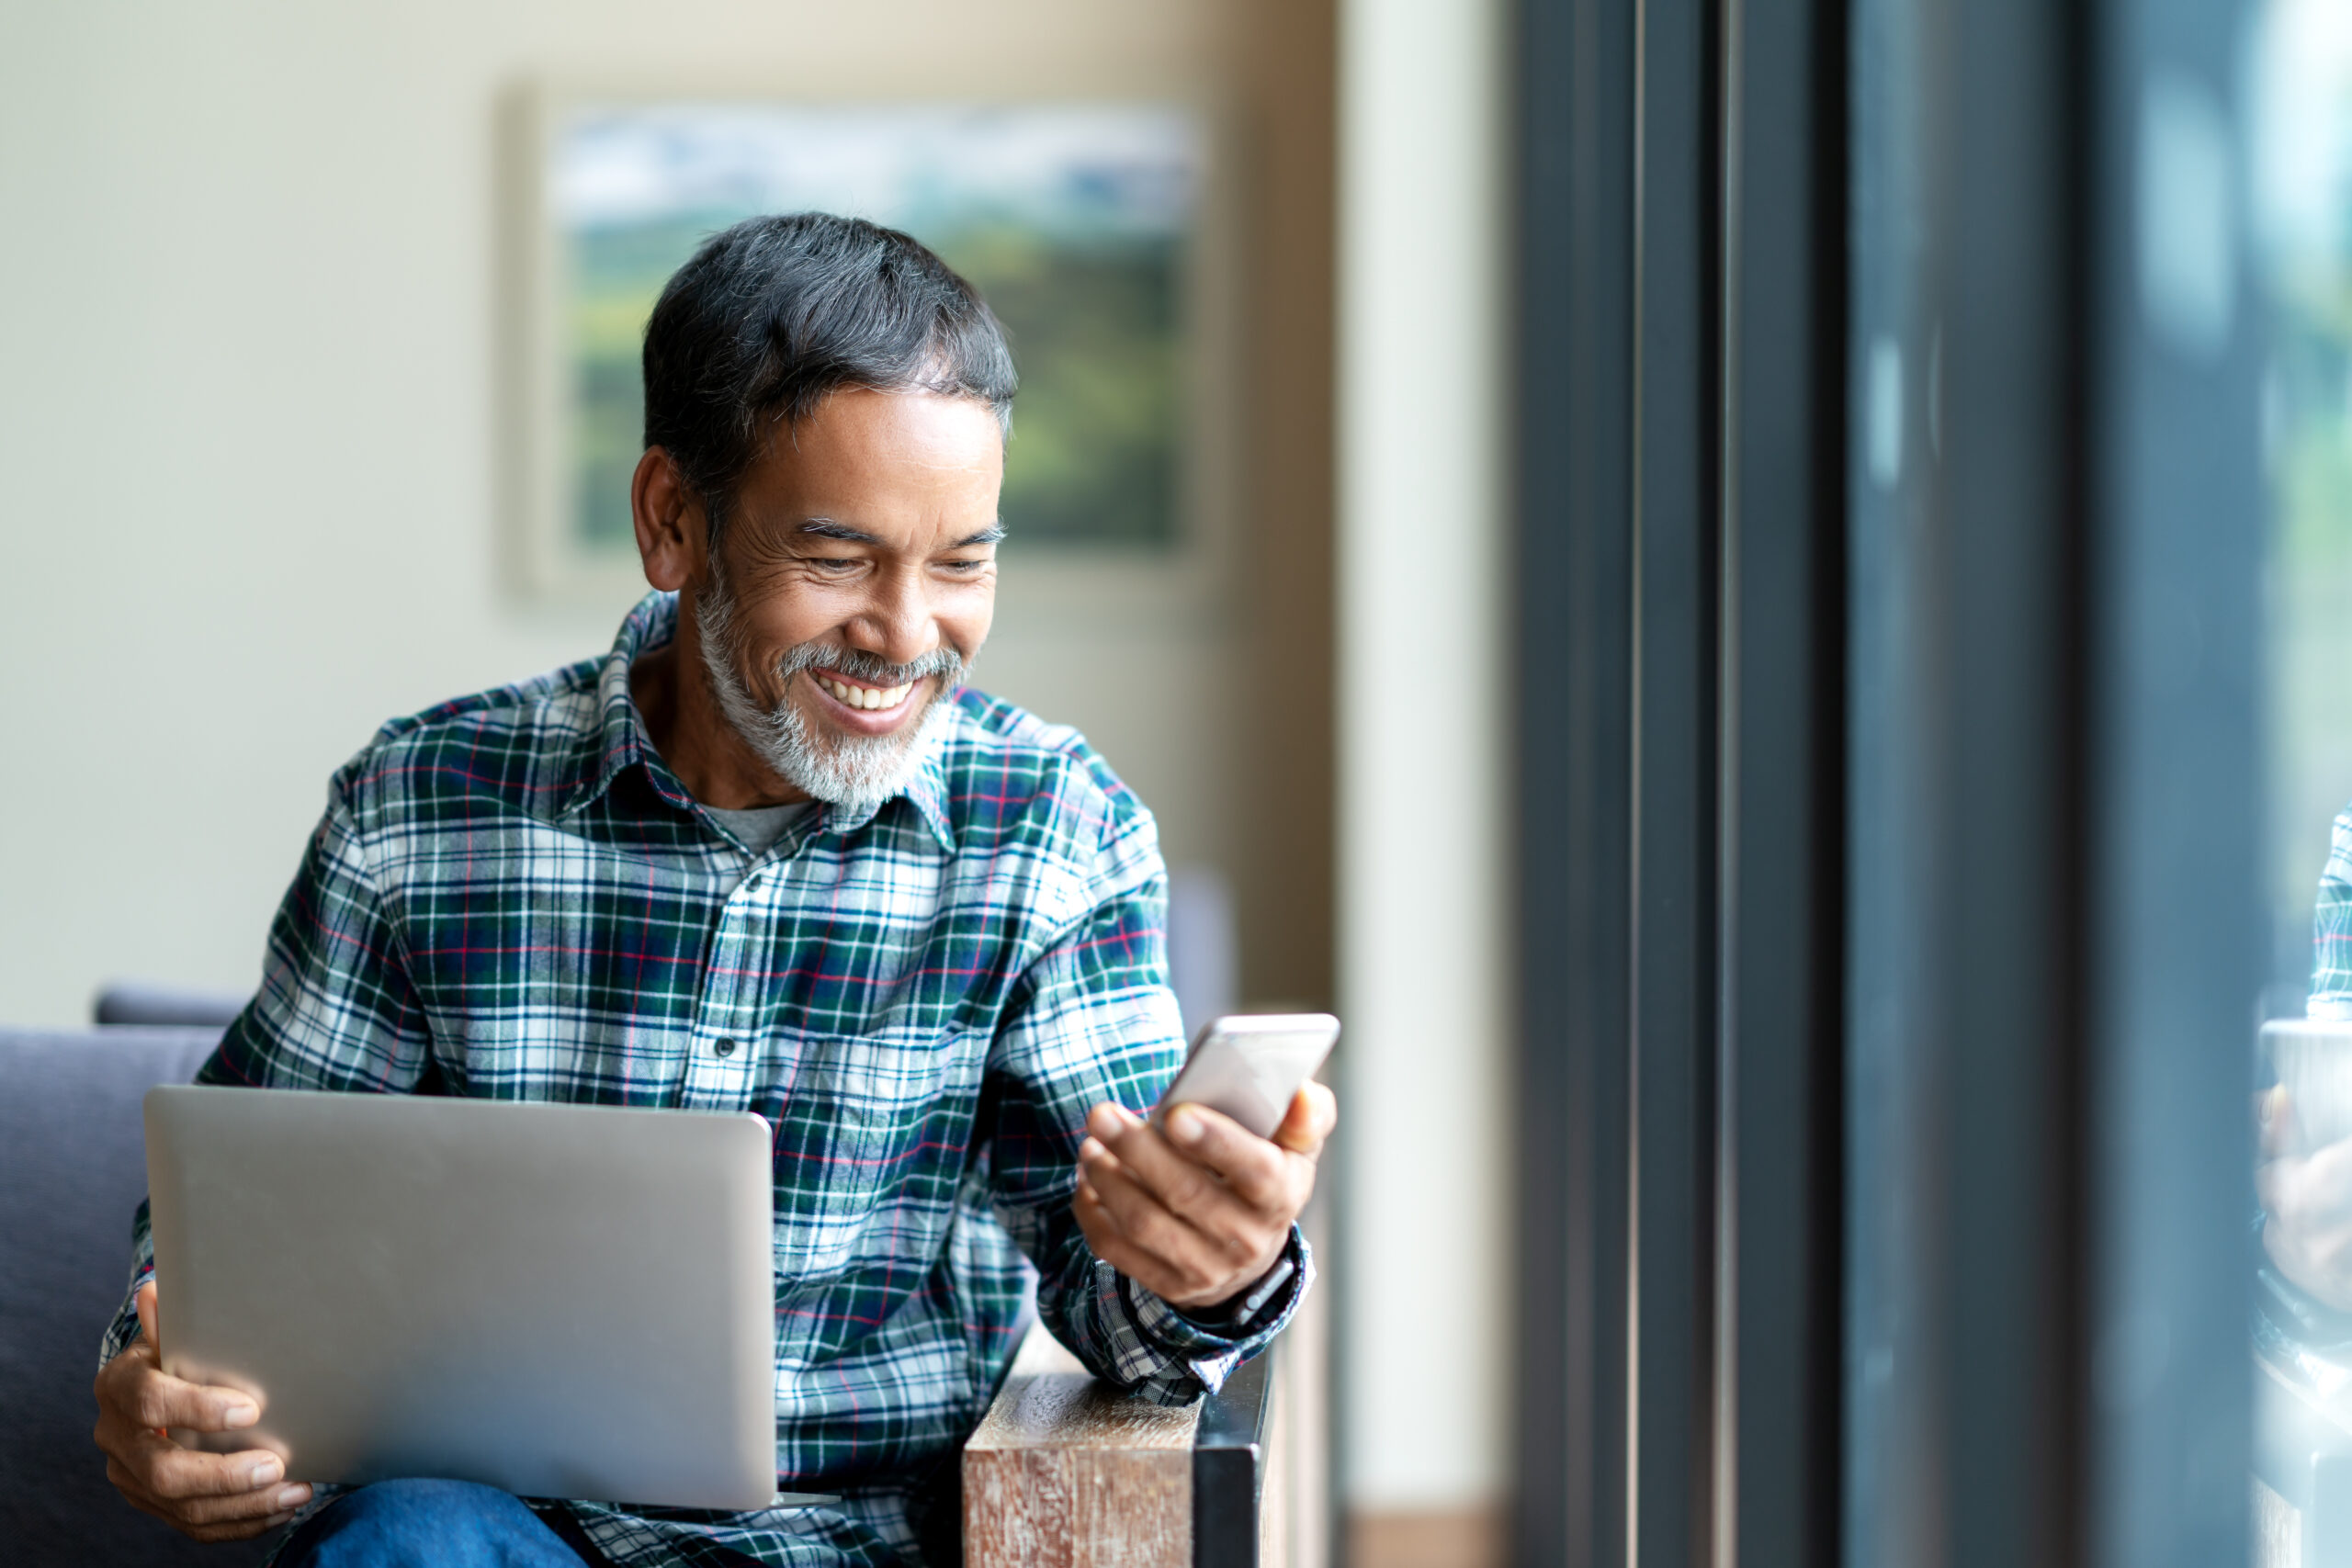 Man using mobile phone and smiling